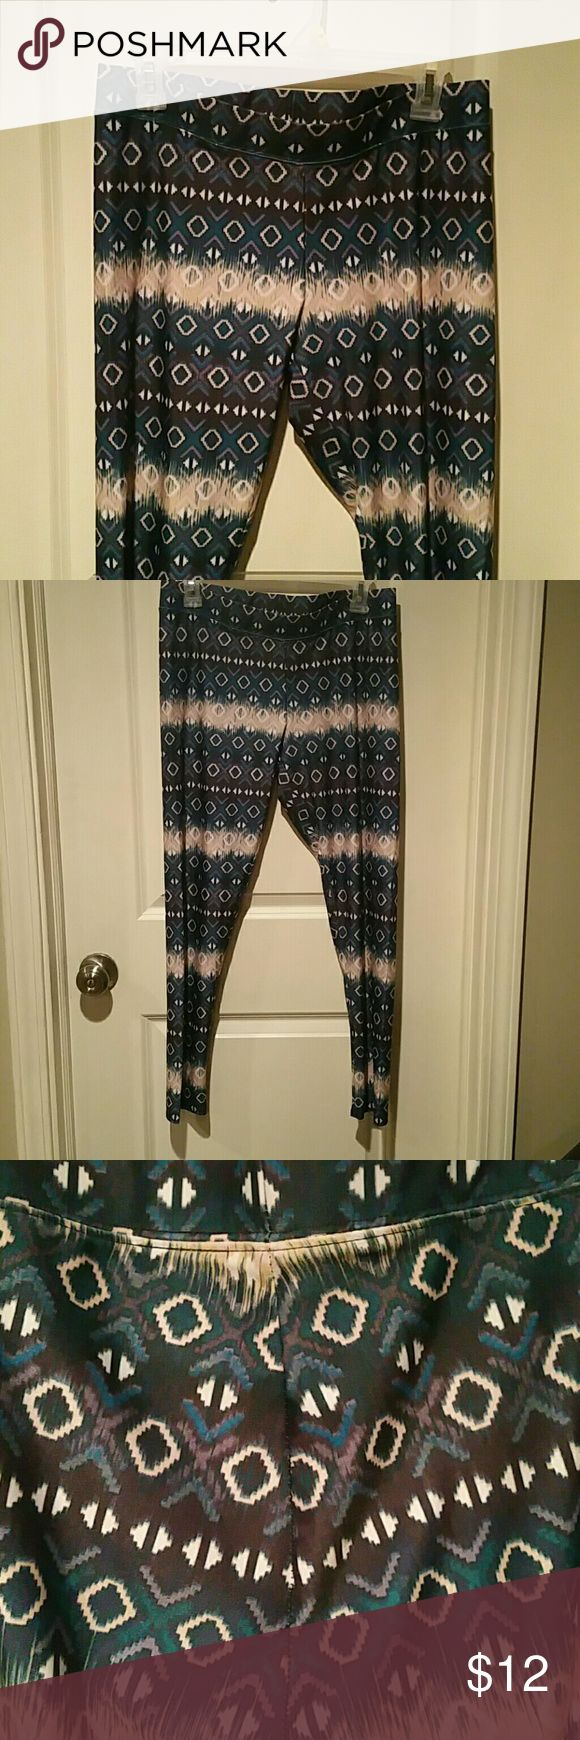 American Eagle Outfitters Leggings American Eagle multi colored leggings.  Tried on, never worn.  Size large.  Regular length, Not capri! American Eagle Outfitters Pants Leggings